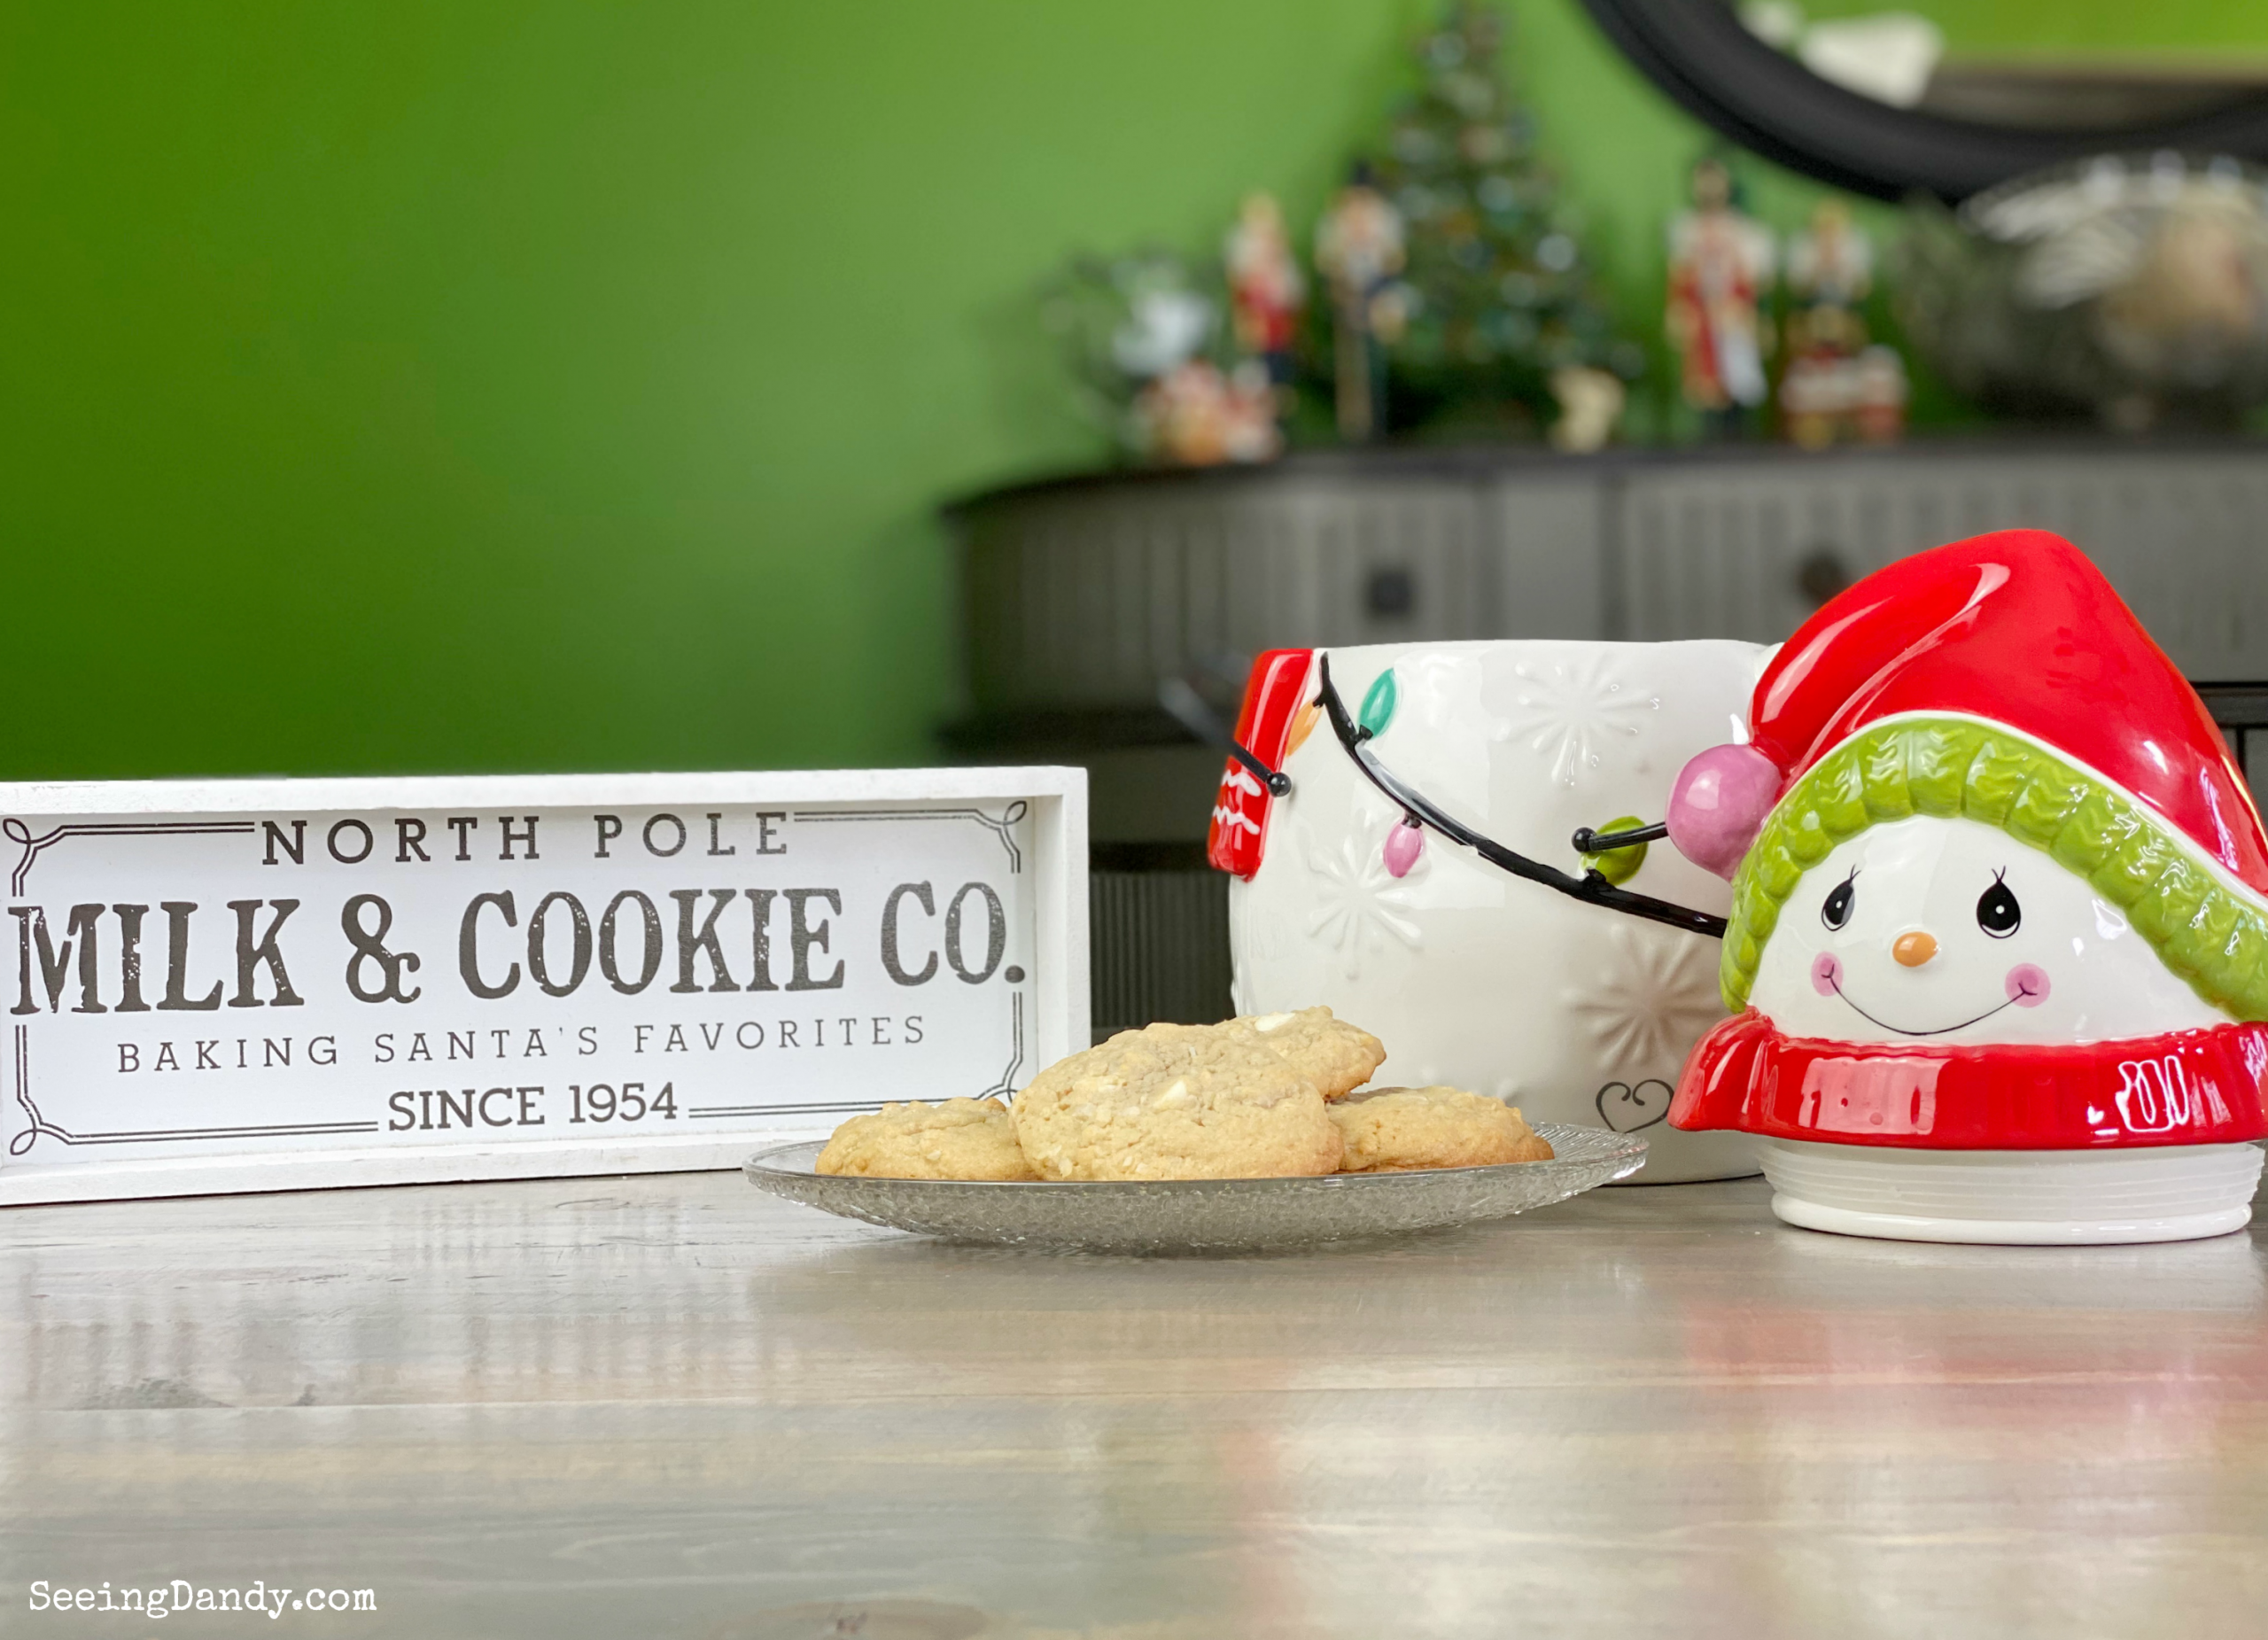 Precious Moments snowman cookie jar with Target Christmas sign and holiday cookies.